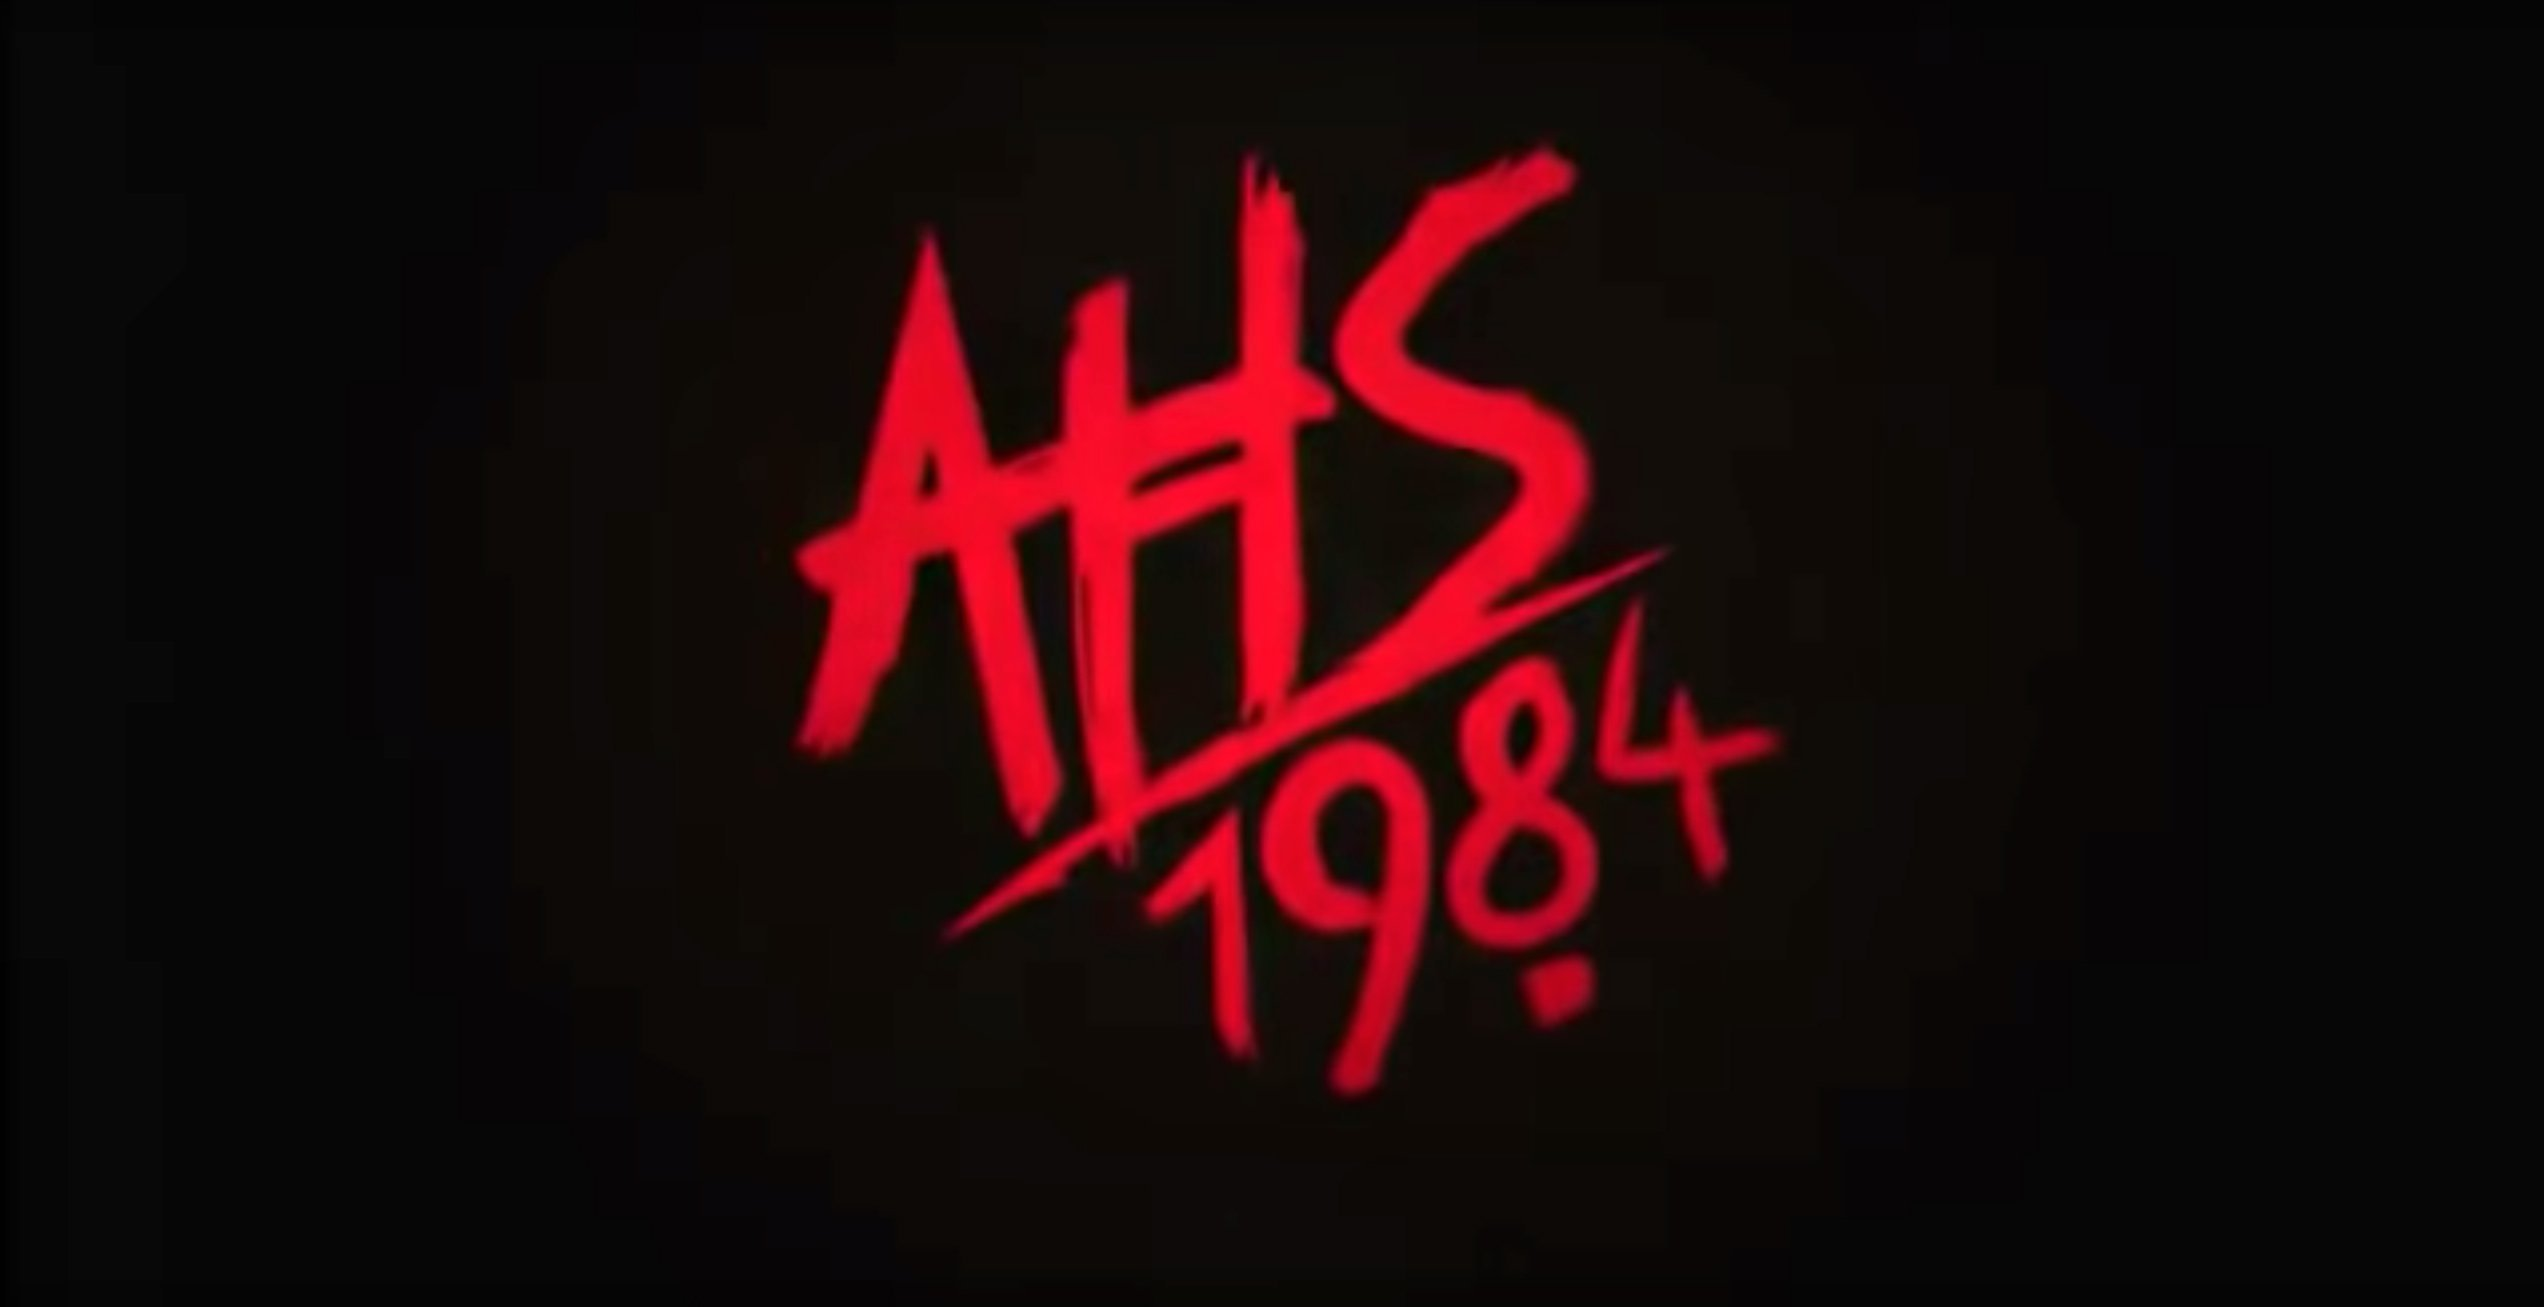 'American Horror Story: 1984' frightens fans with portrayal of real-life serial killer Richard Ramirez